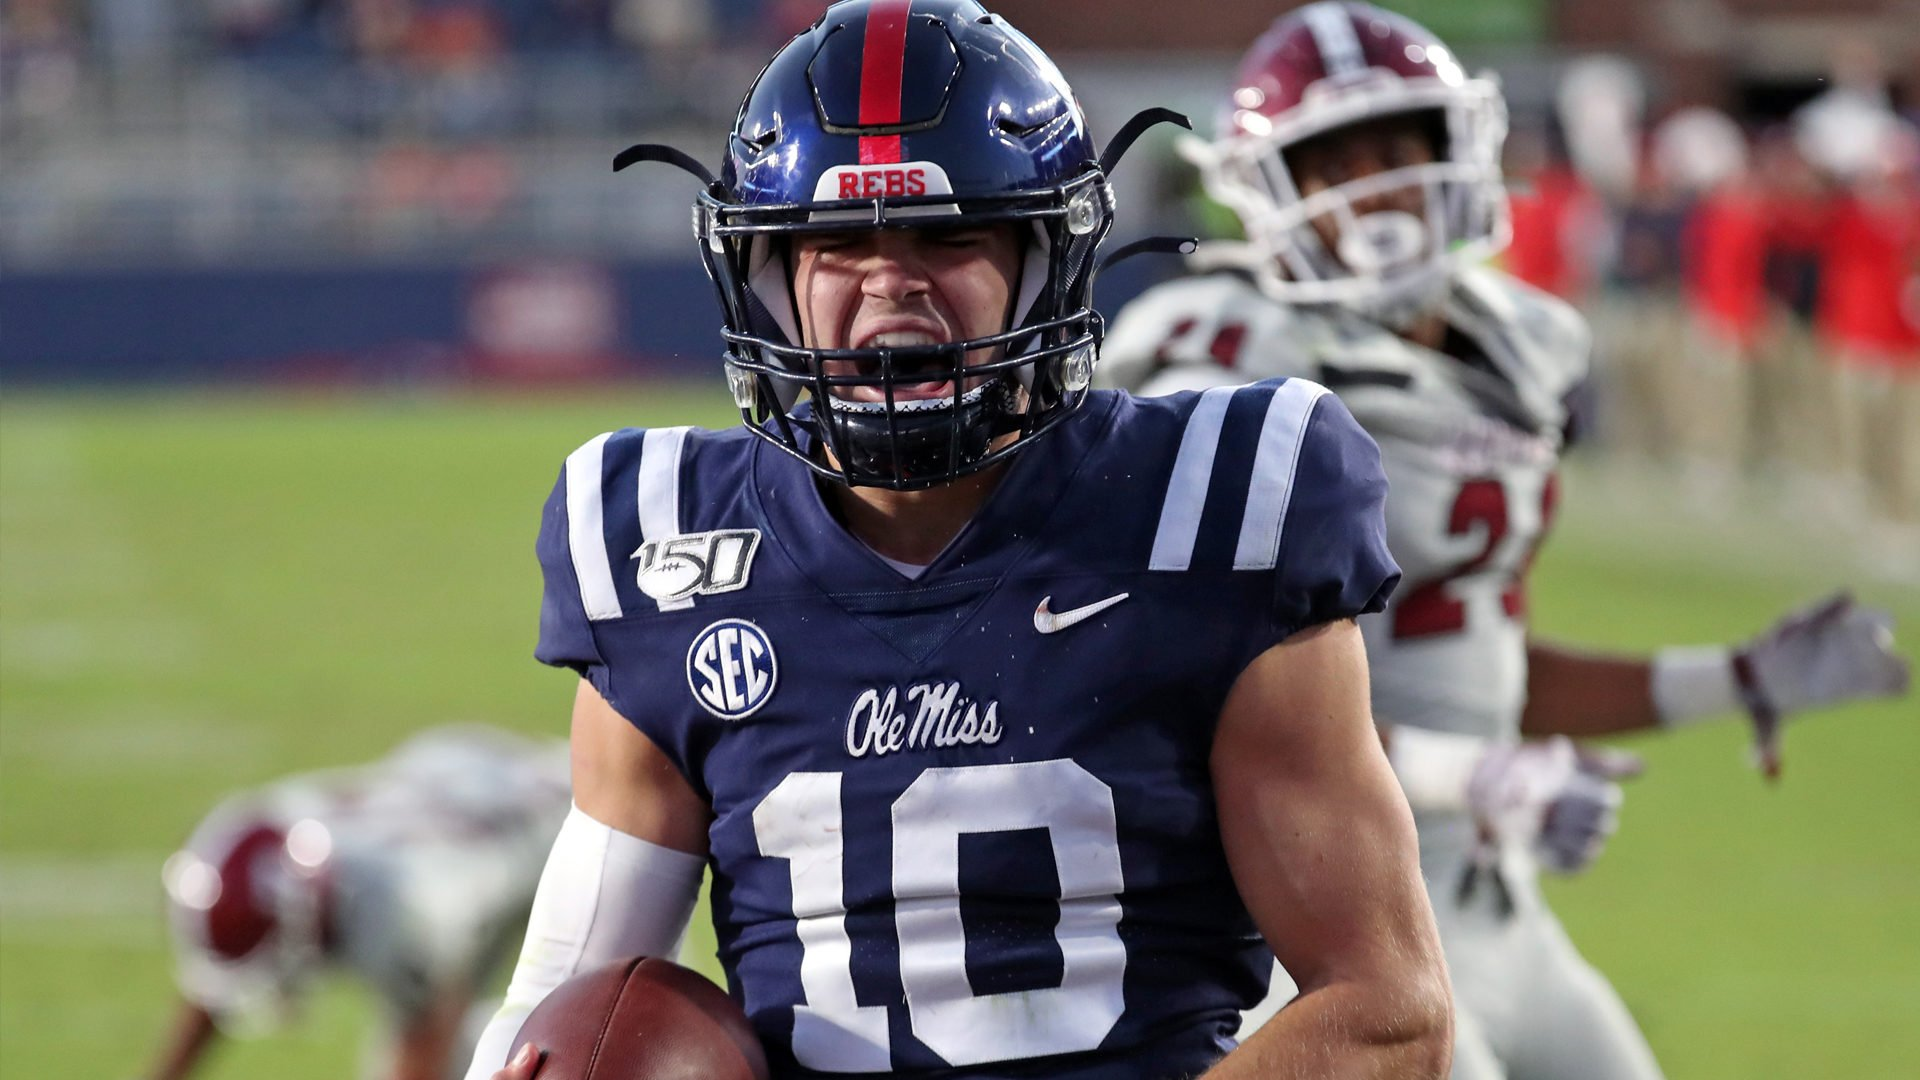 The Season: Ole Miss Football – New Mexico State (2019)